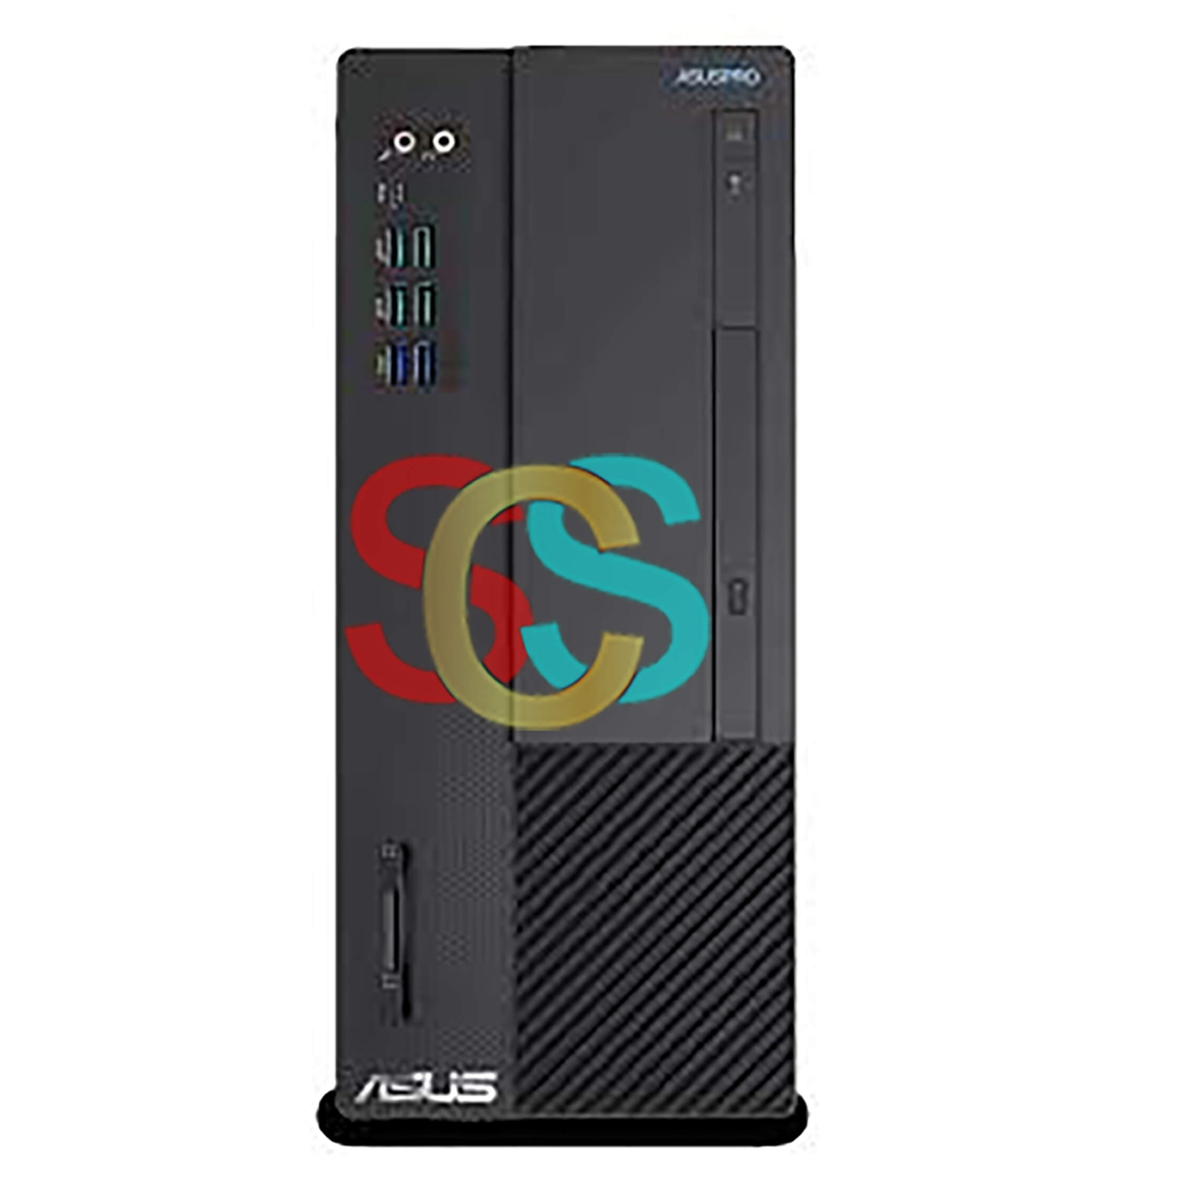 Asus D641MD Core i5 9th Gen Brand PC